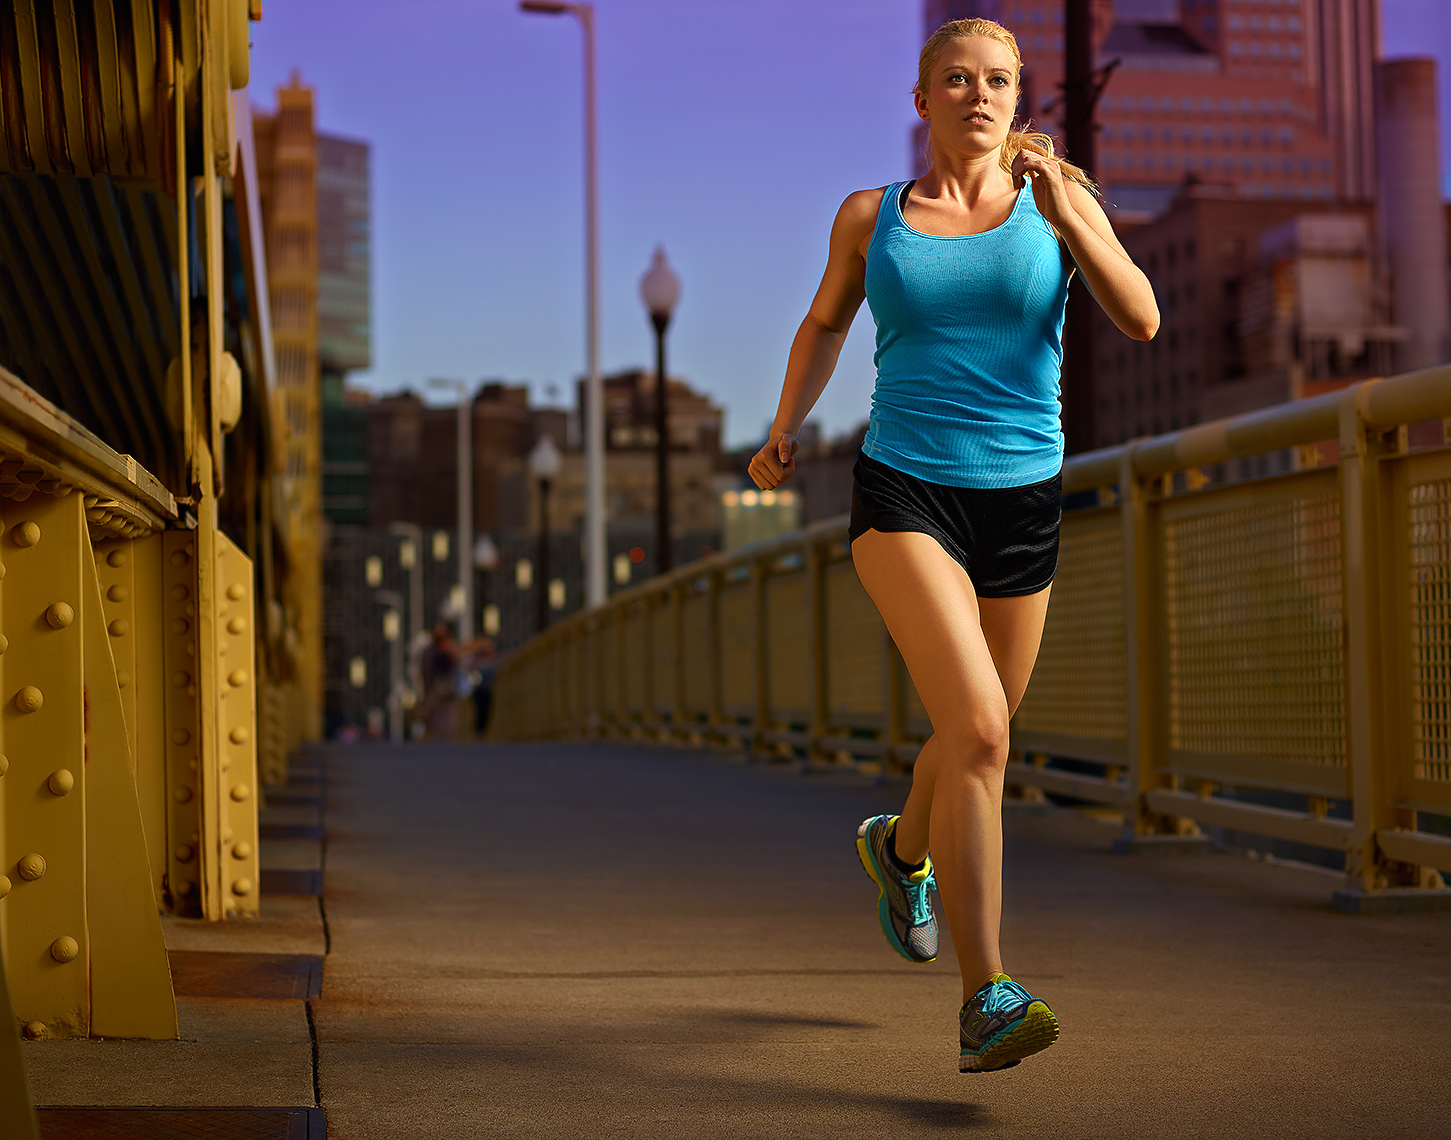 action photo of runner on roberto clemente bridge by brian kaldorf